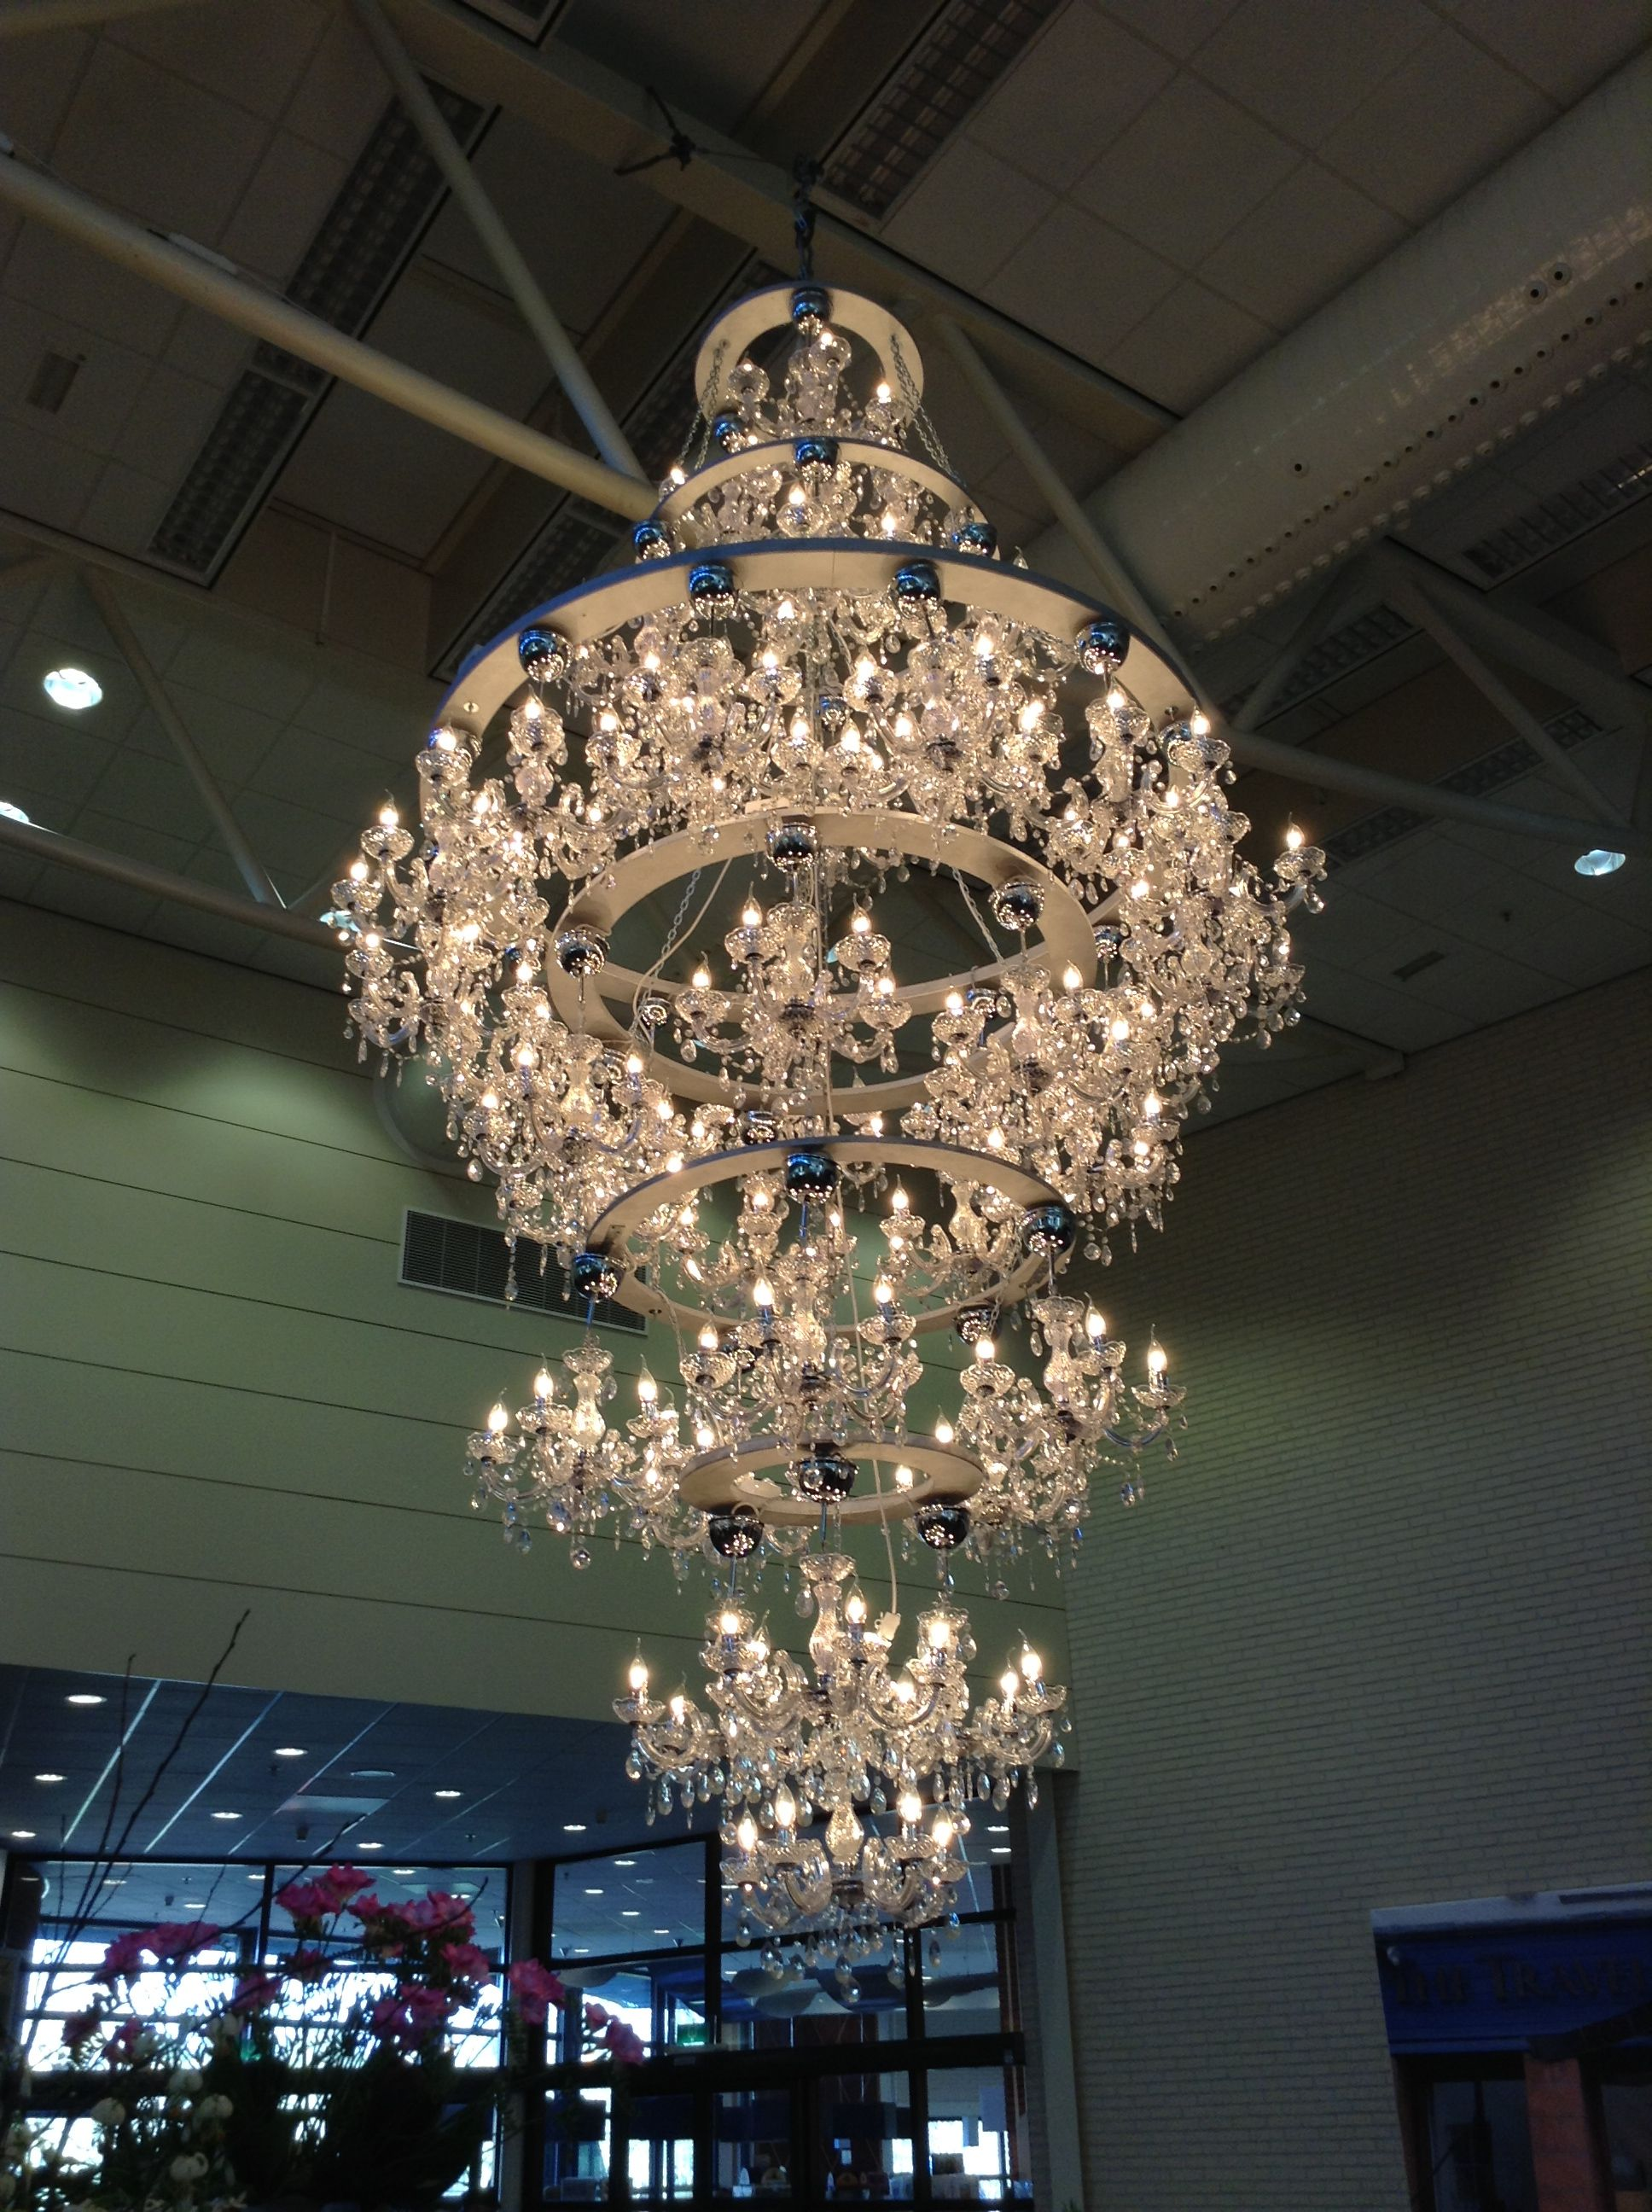 Chandeliers made out of chandeliers in Amsterdam